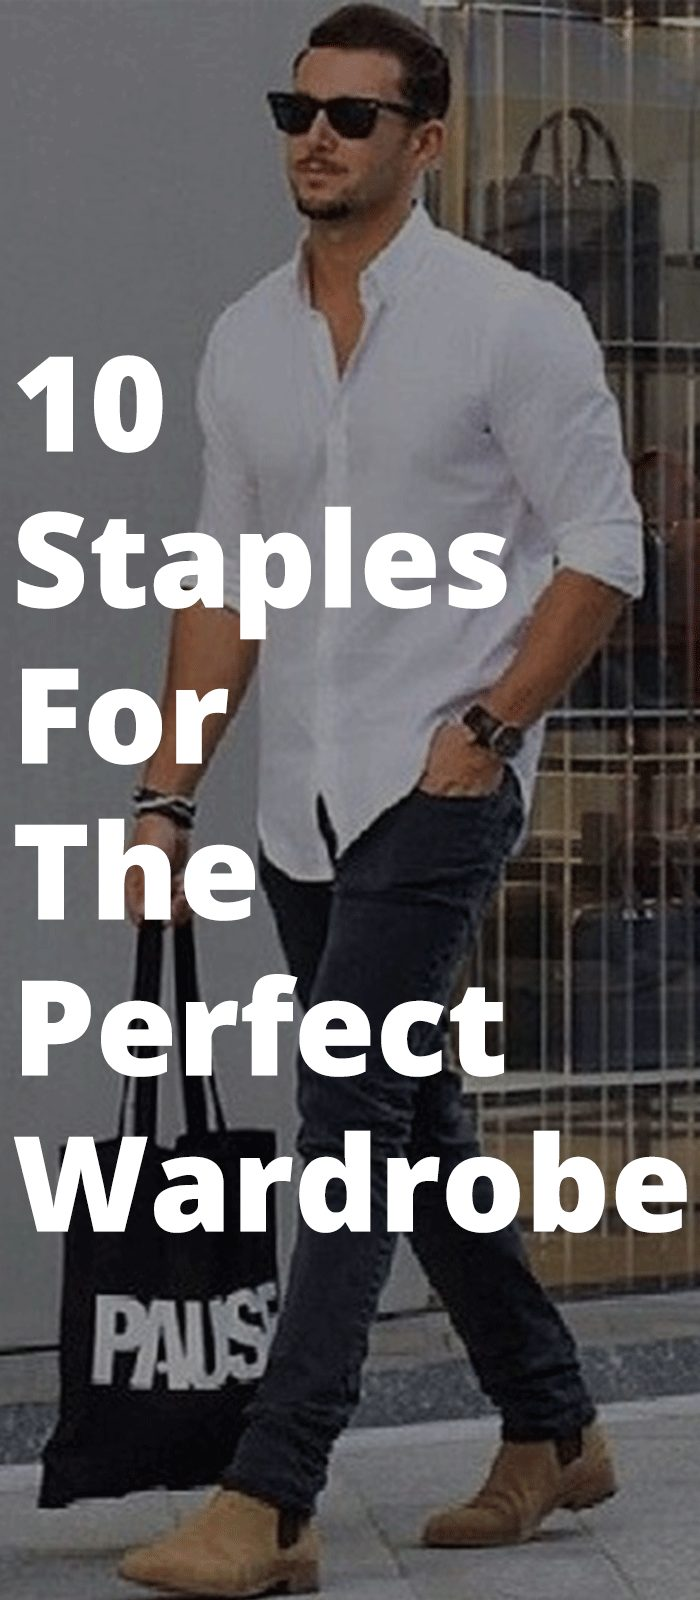 10 Staples For The Perfect Wardrobe